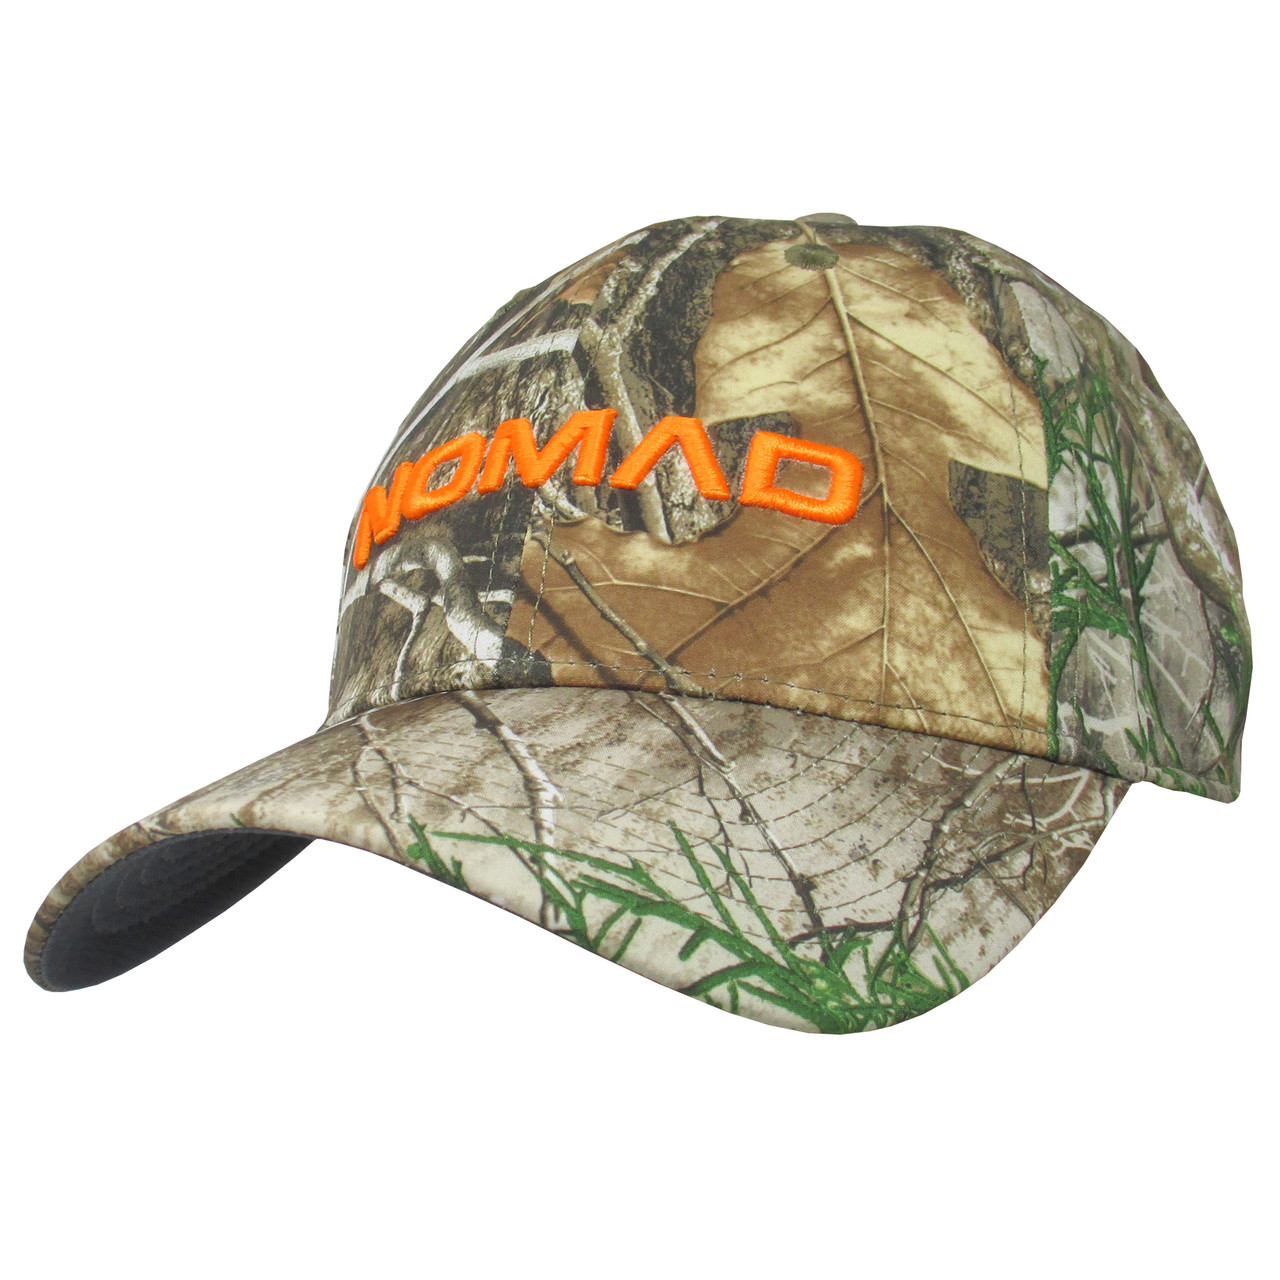 Nomad Camo Stretch Hunting Cap, N3000042 Realtree Edge